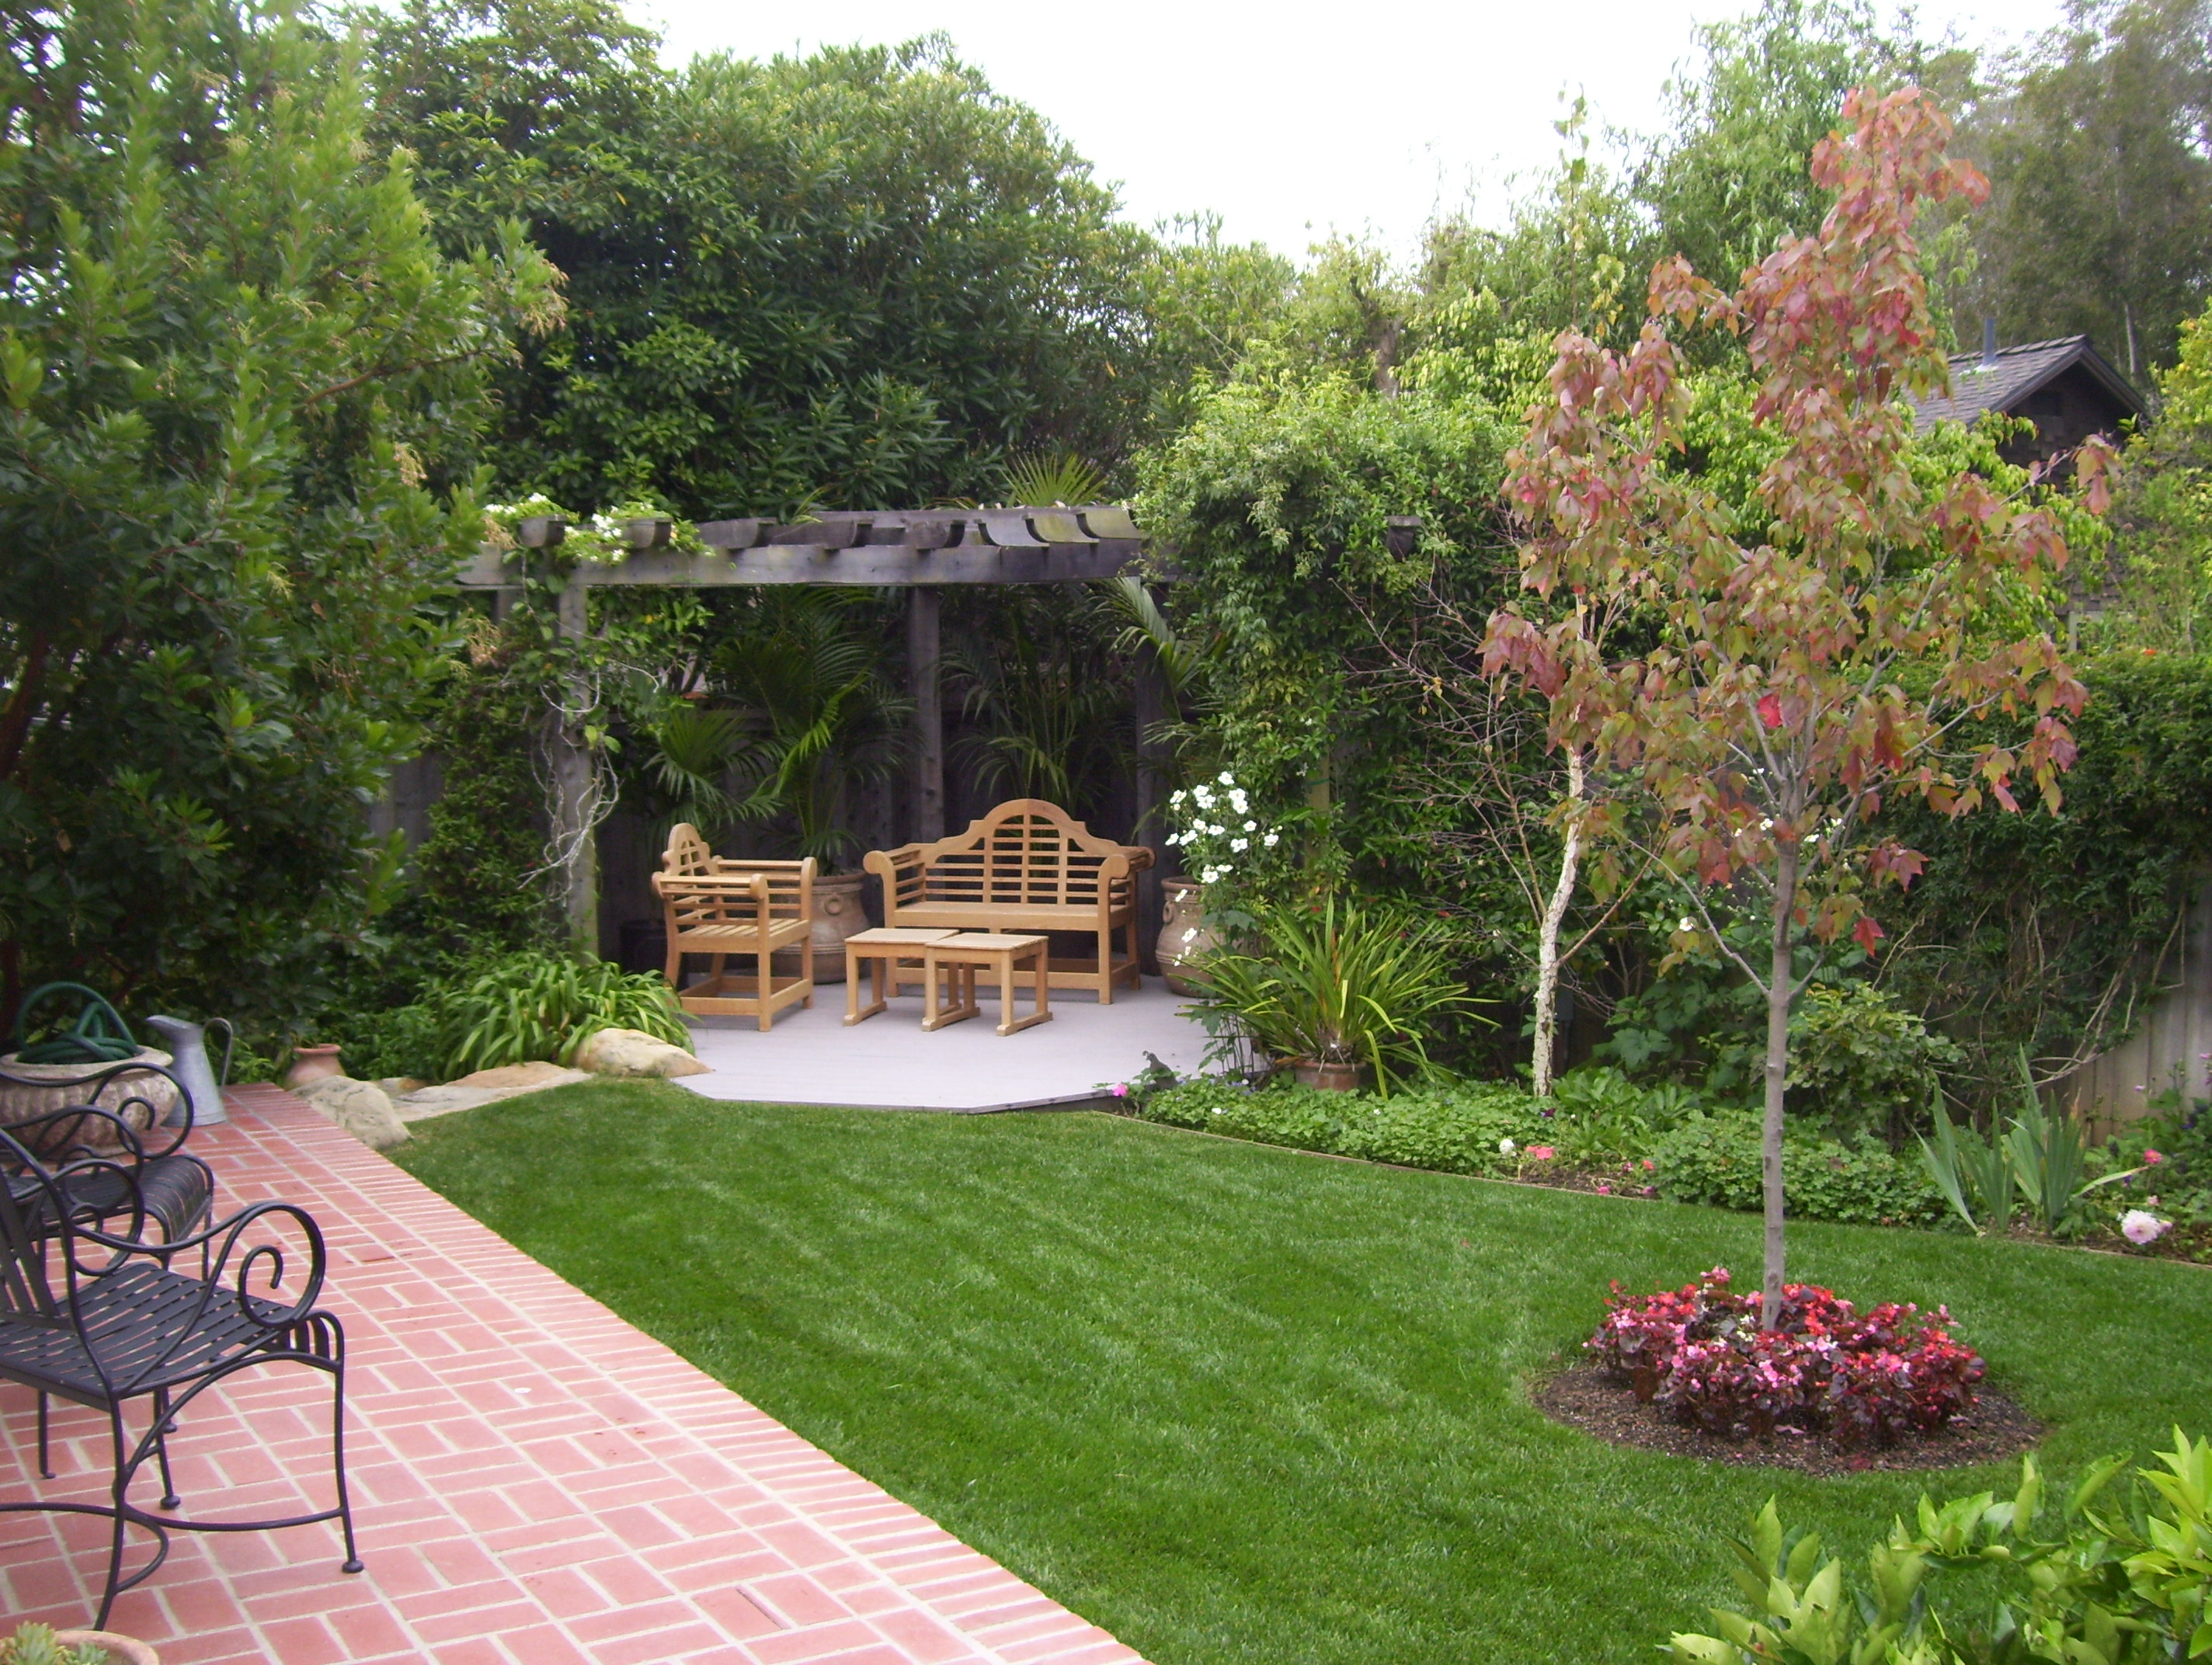 Backyard landscaping ideas santa barbara down to earth for Pics of landscaped backyards